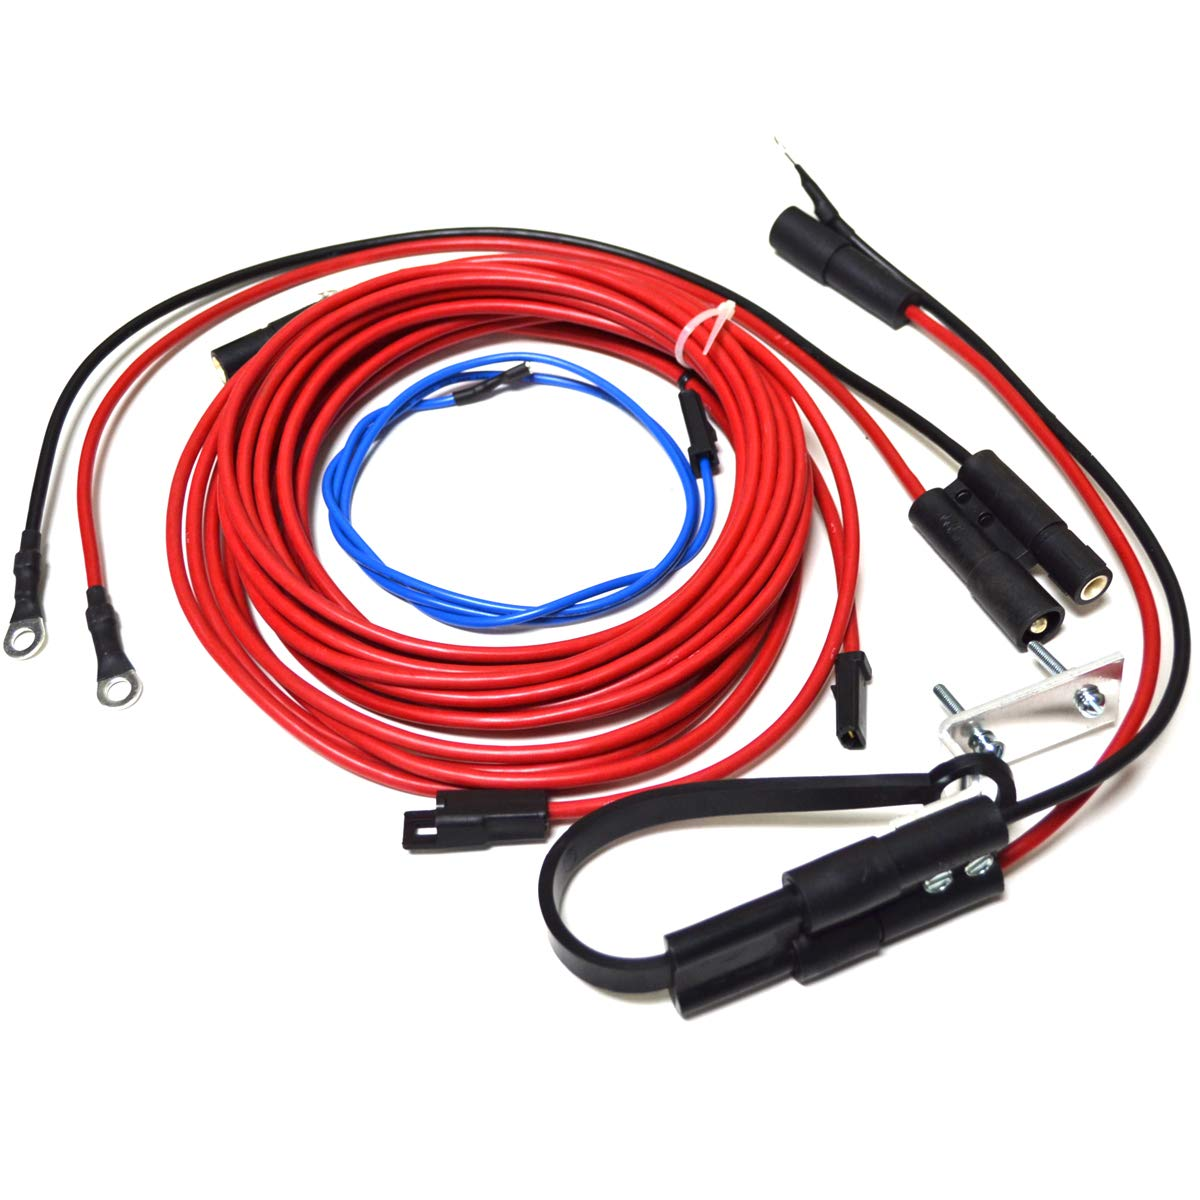 Wiring Harness for SaltDogg TGS01 TGS01A Salt Spreaders Buyers 0206500 Replaces 3001540